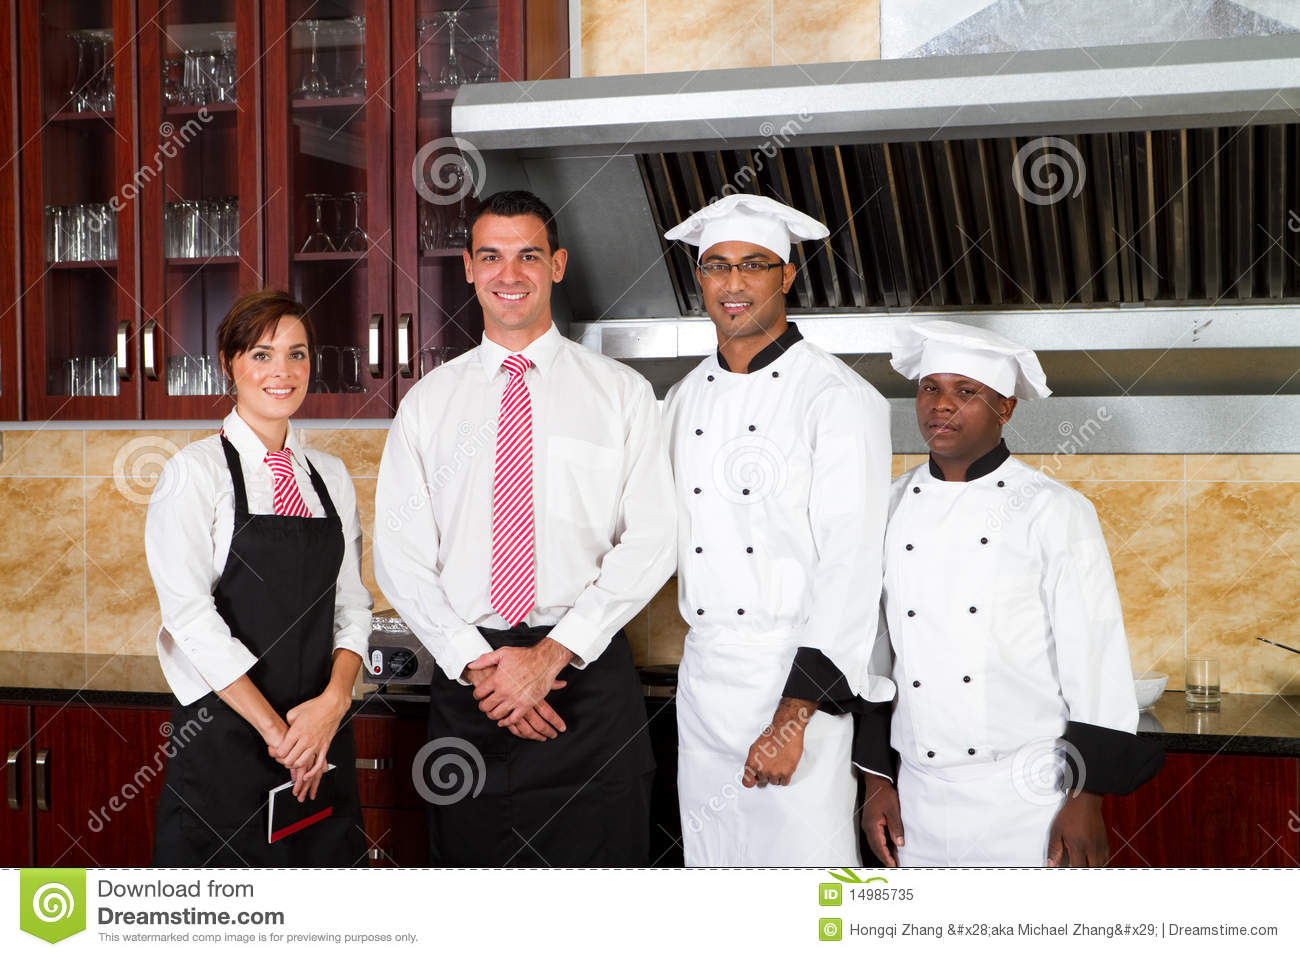 Restaurant Workers Royalty Free Stock Photo Image 14985735